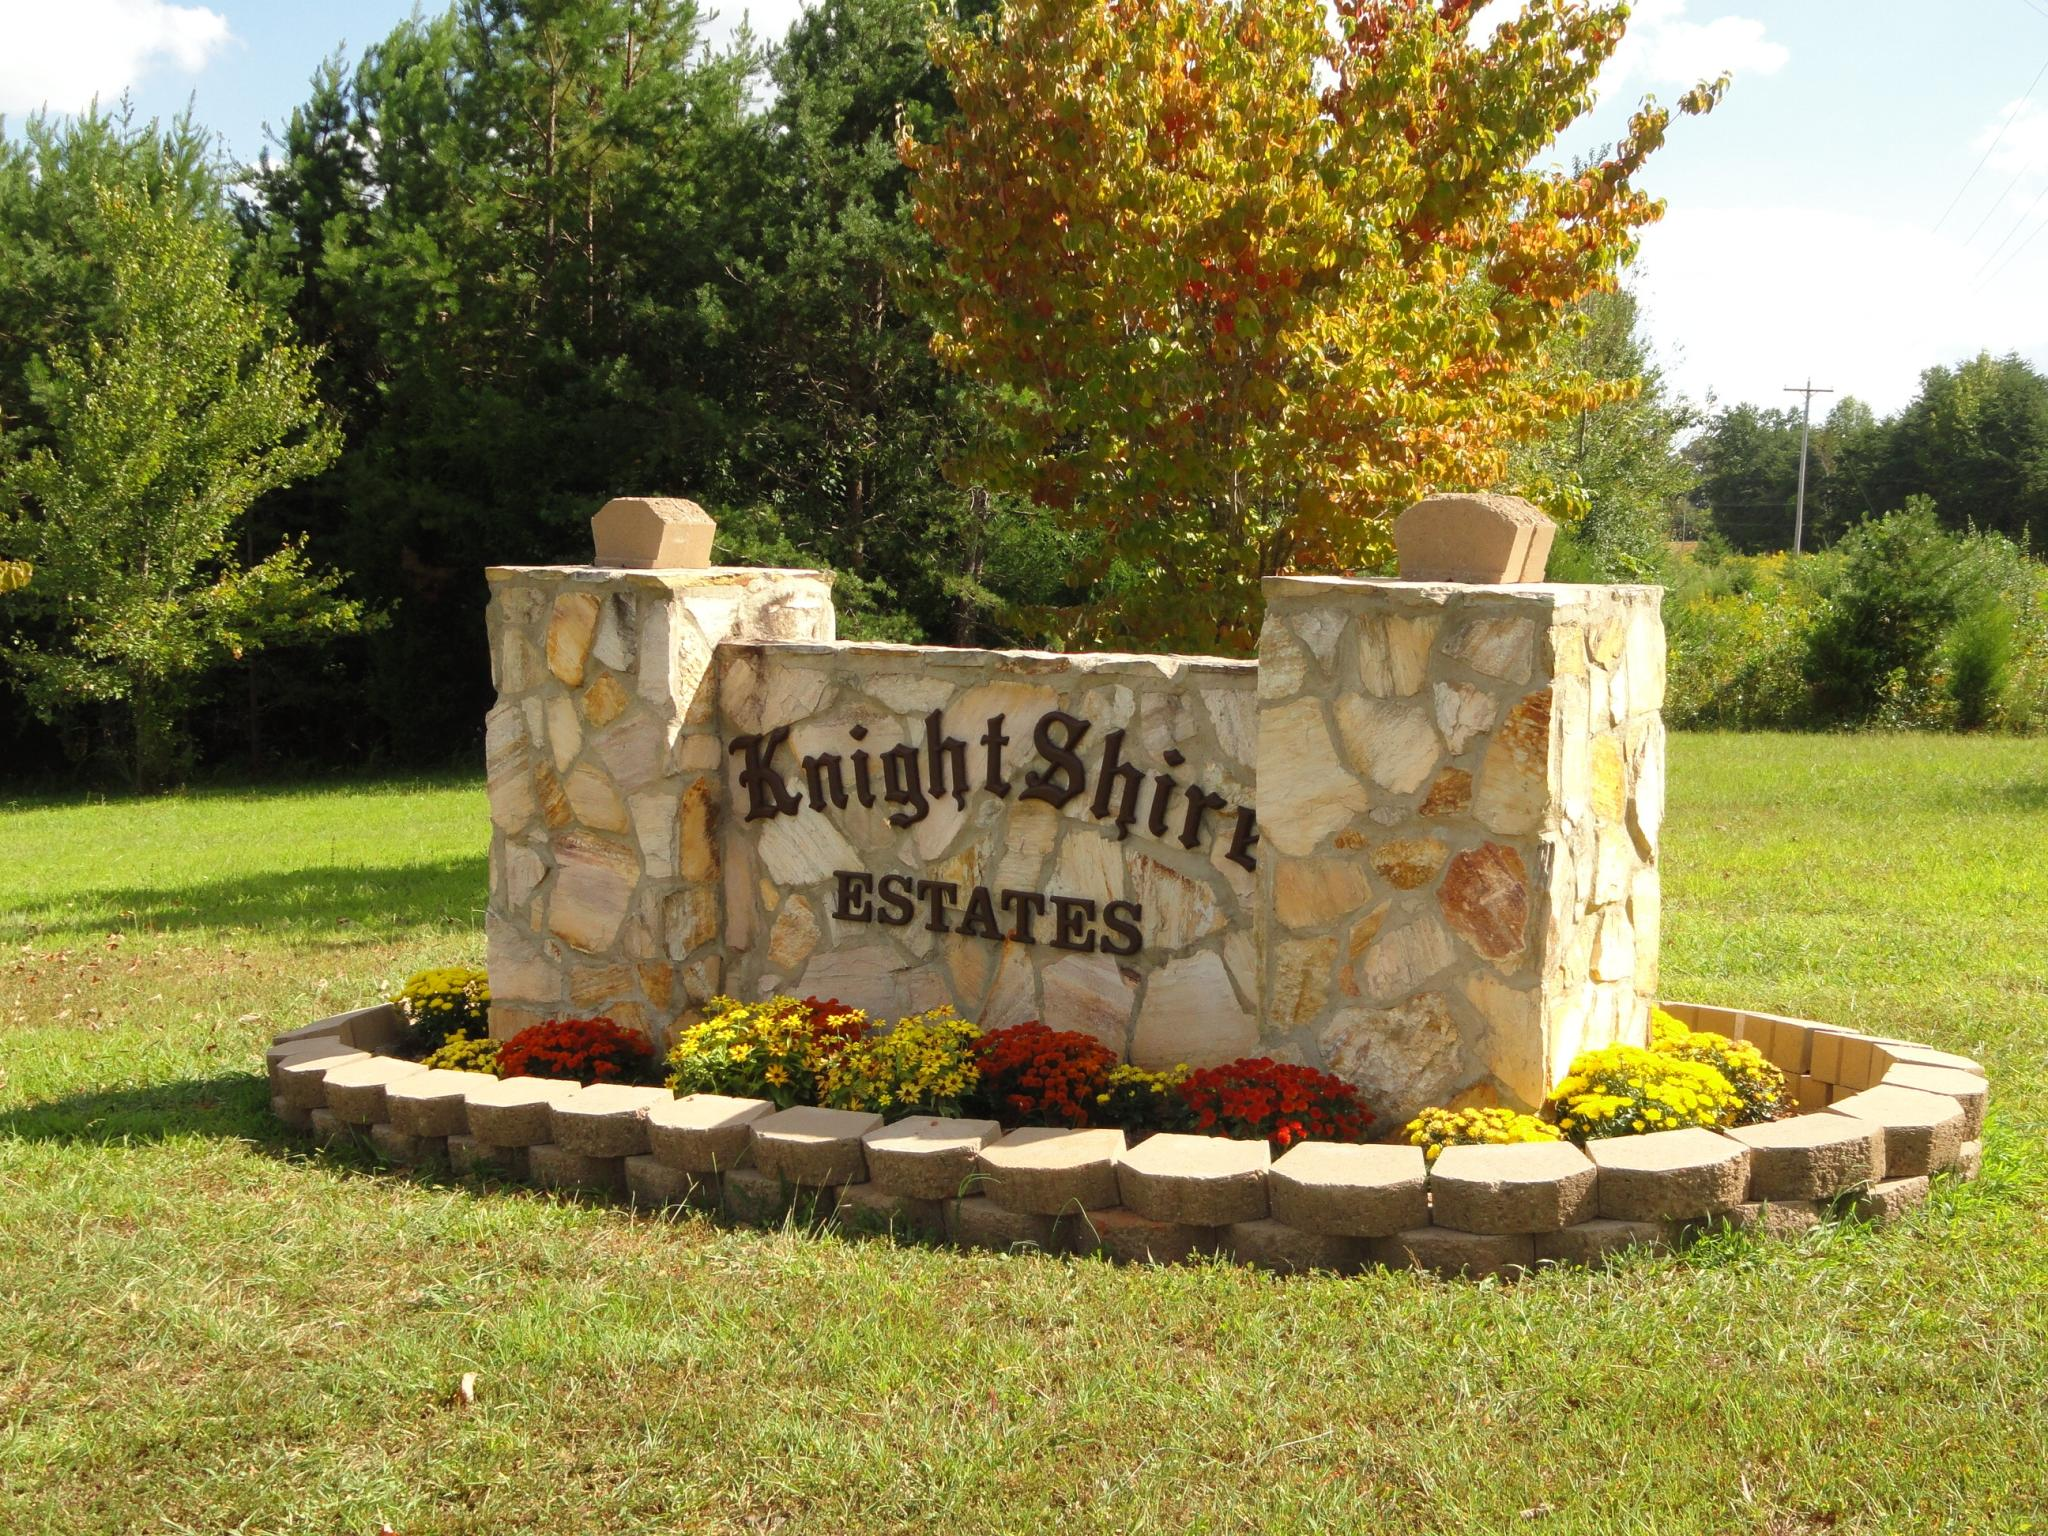 TBD-LOT 1 Cross Country, Stokesdale, NC 27357 | Trulia